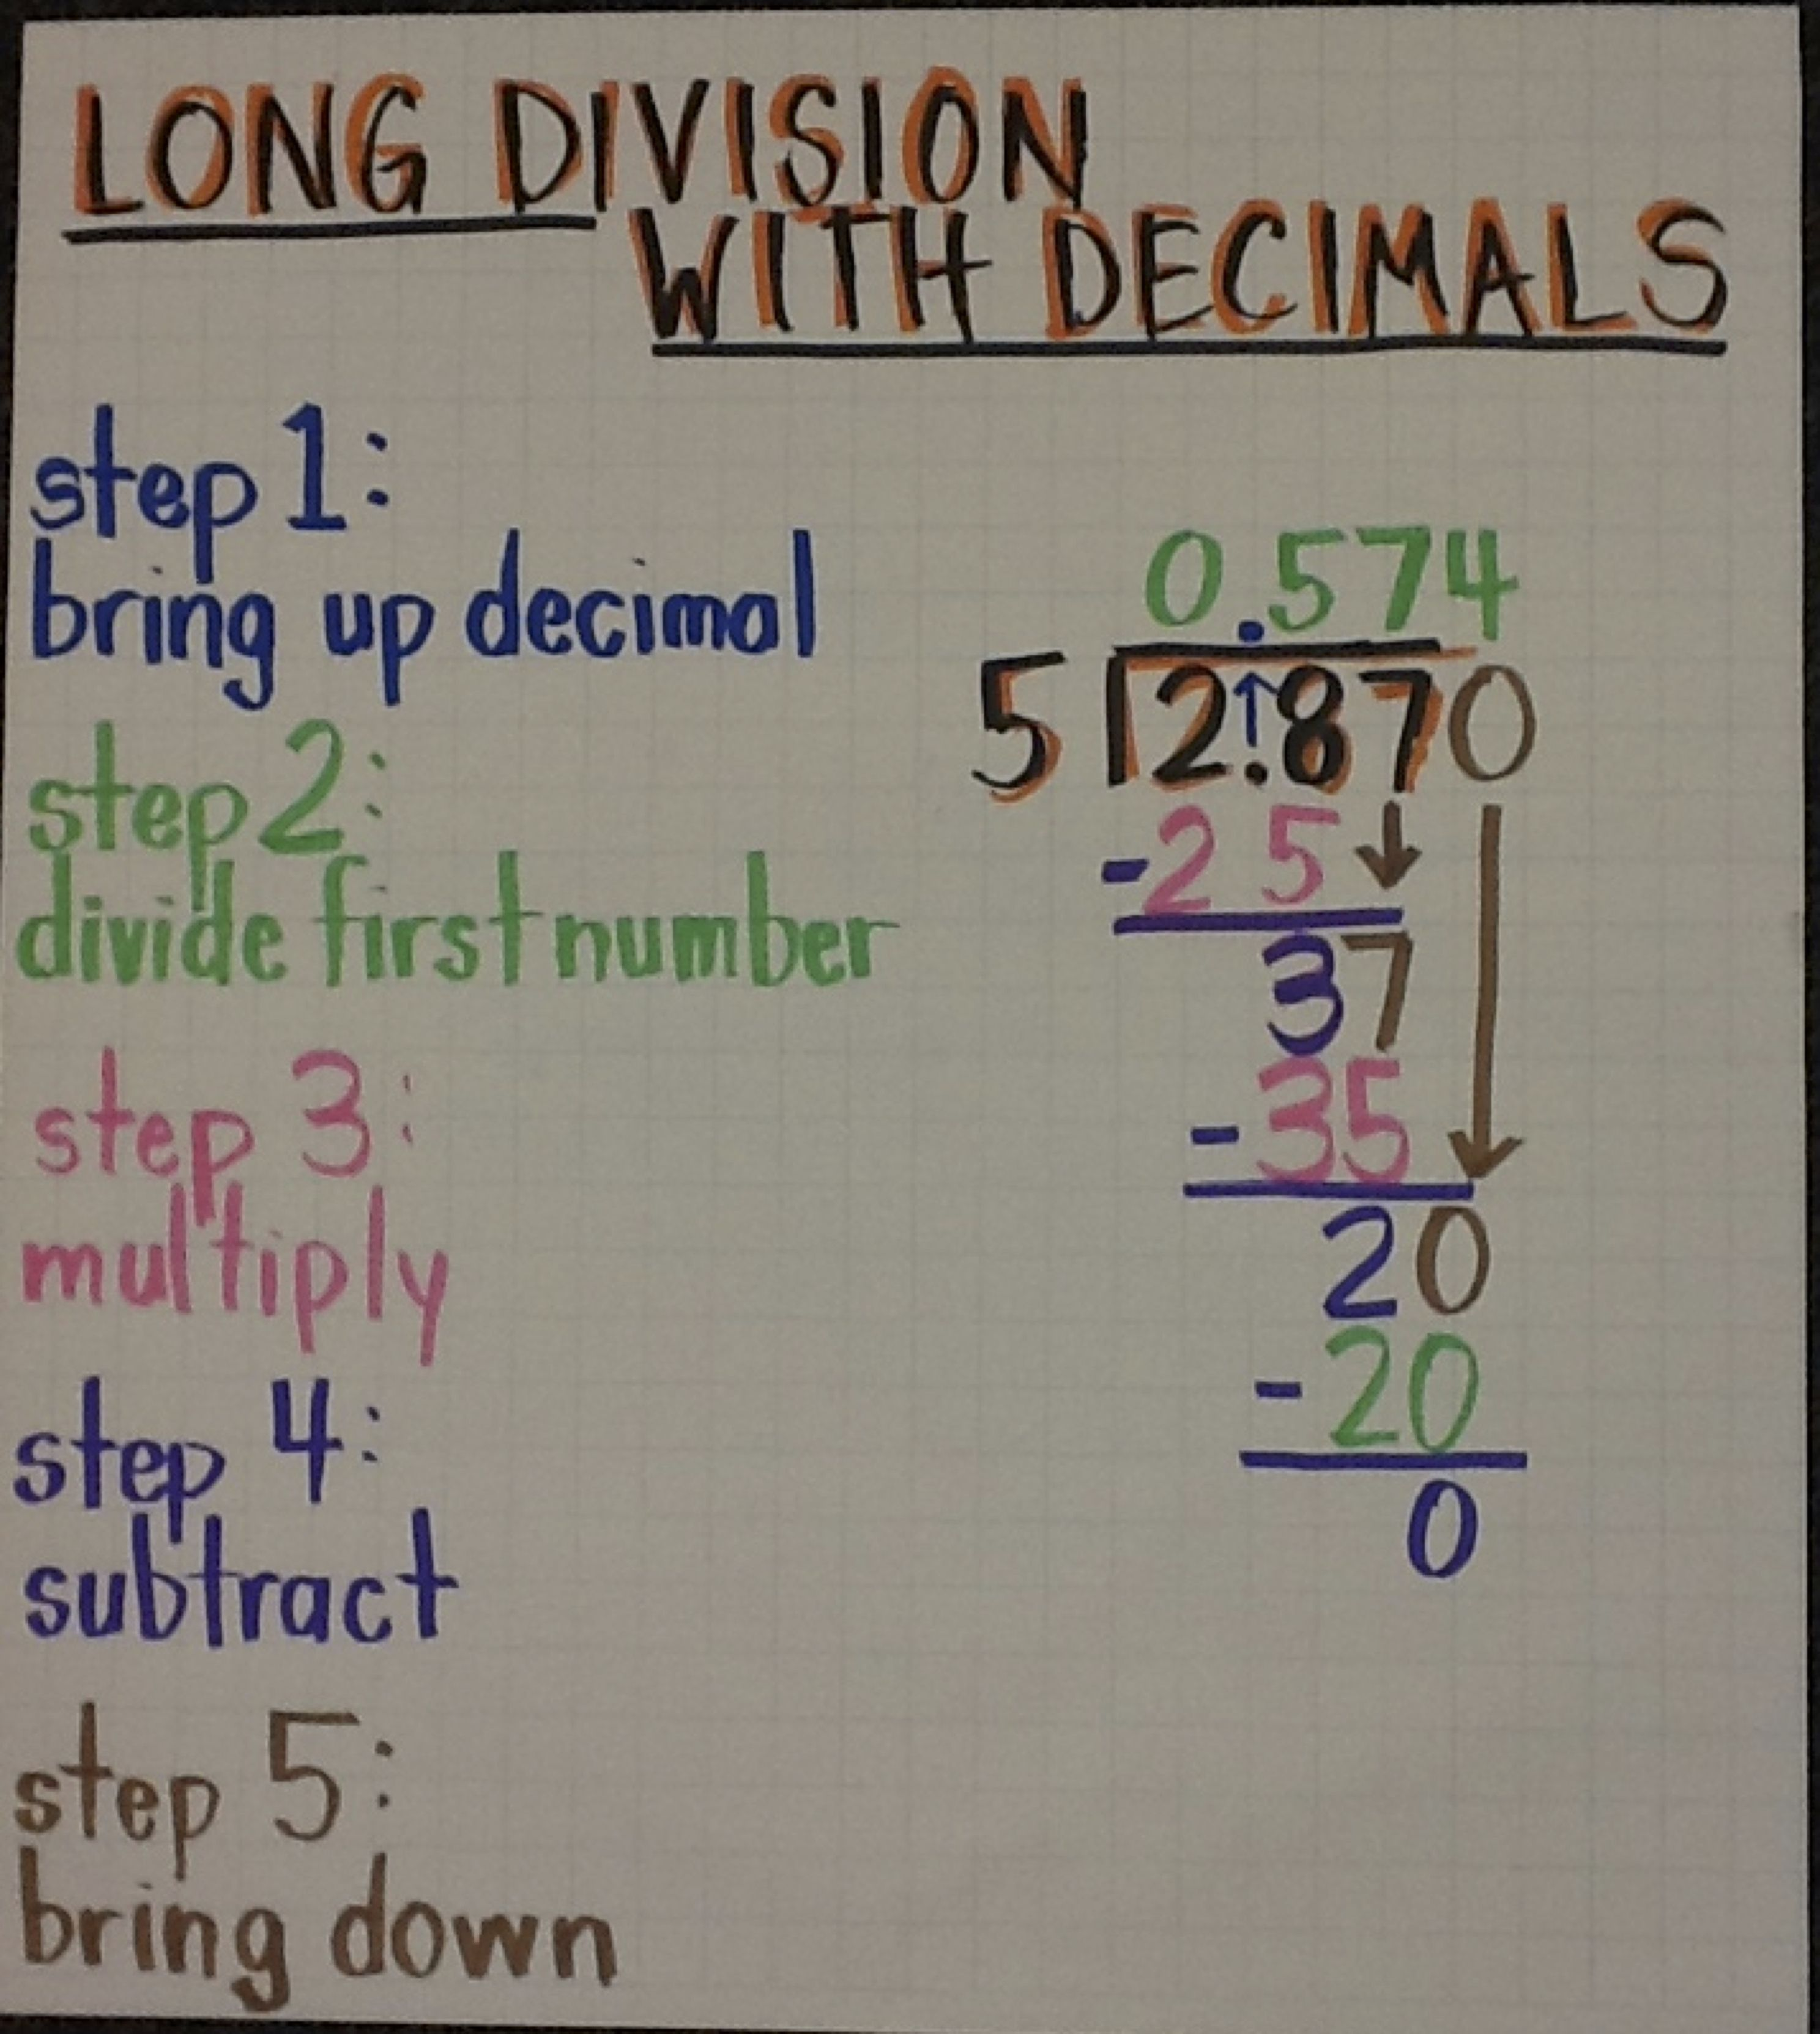 Long Division 2: Dividing With Decimals (Simplifying Math) - YouTube